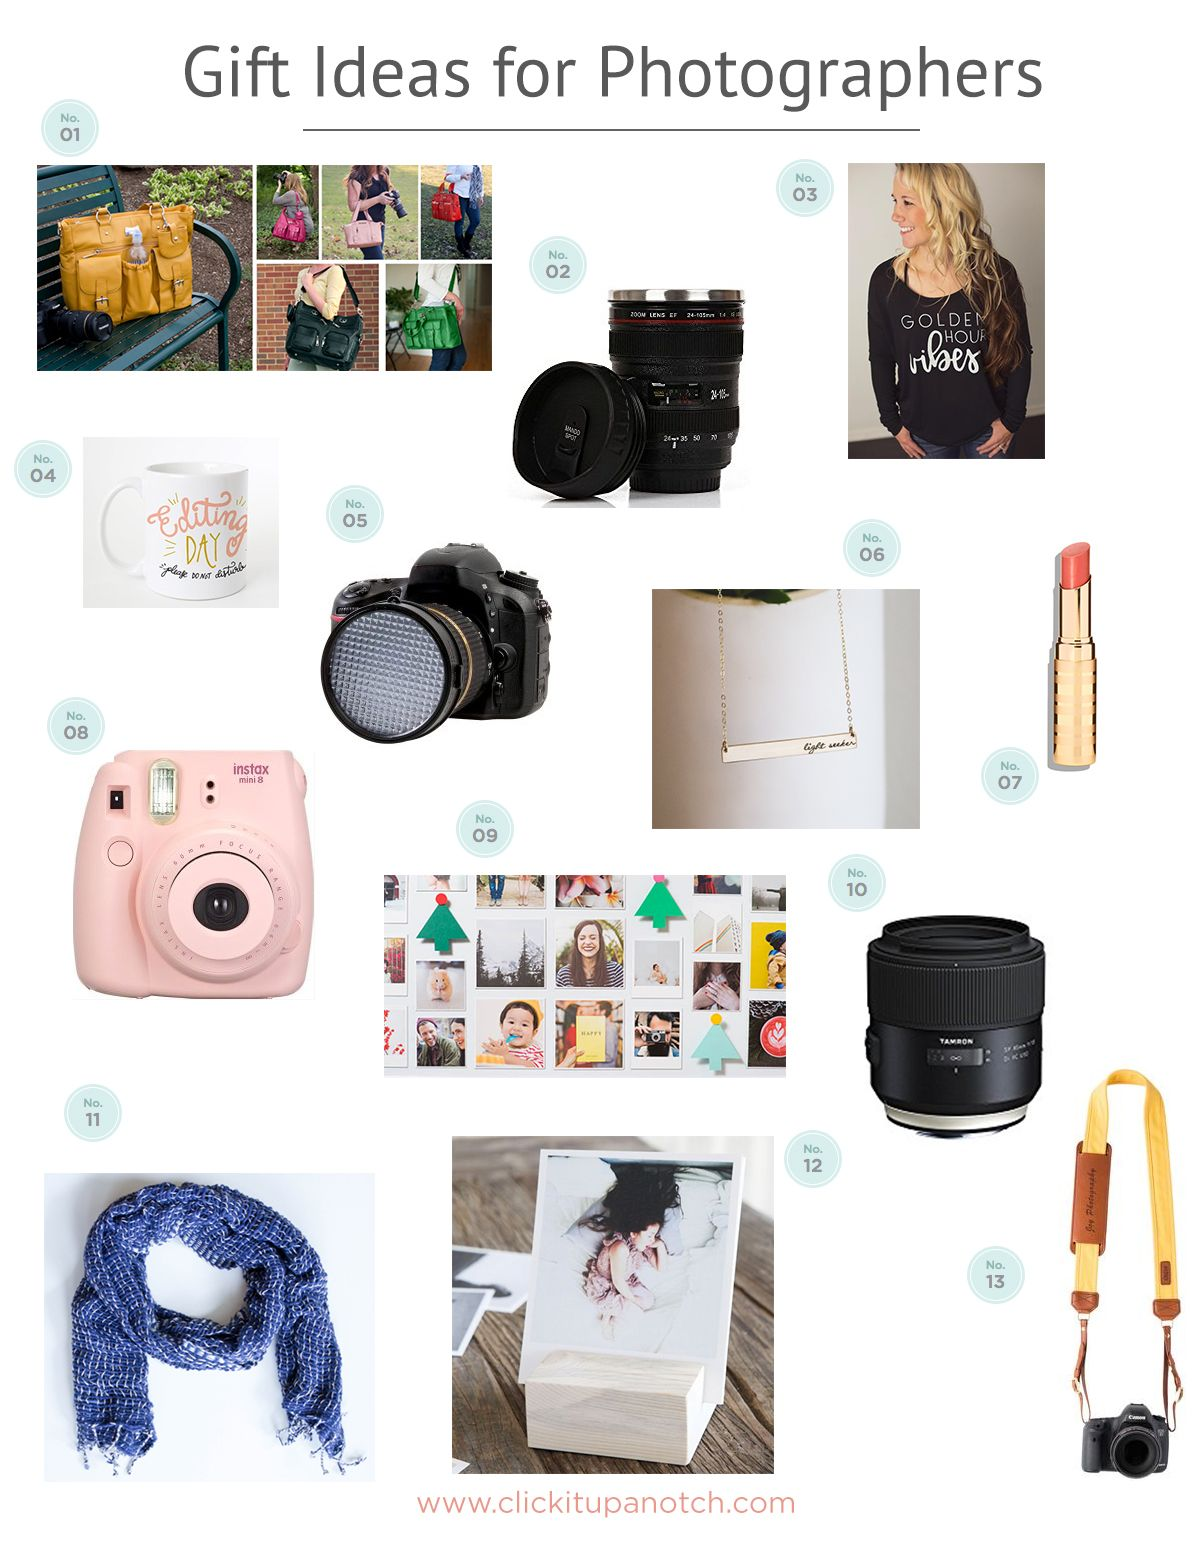 gift ideas for photographers | click it up a notch community